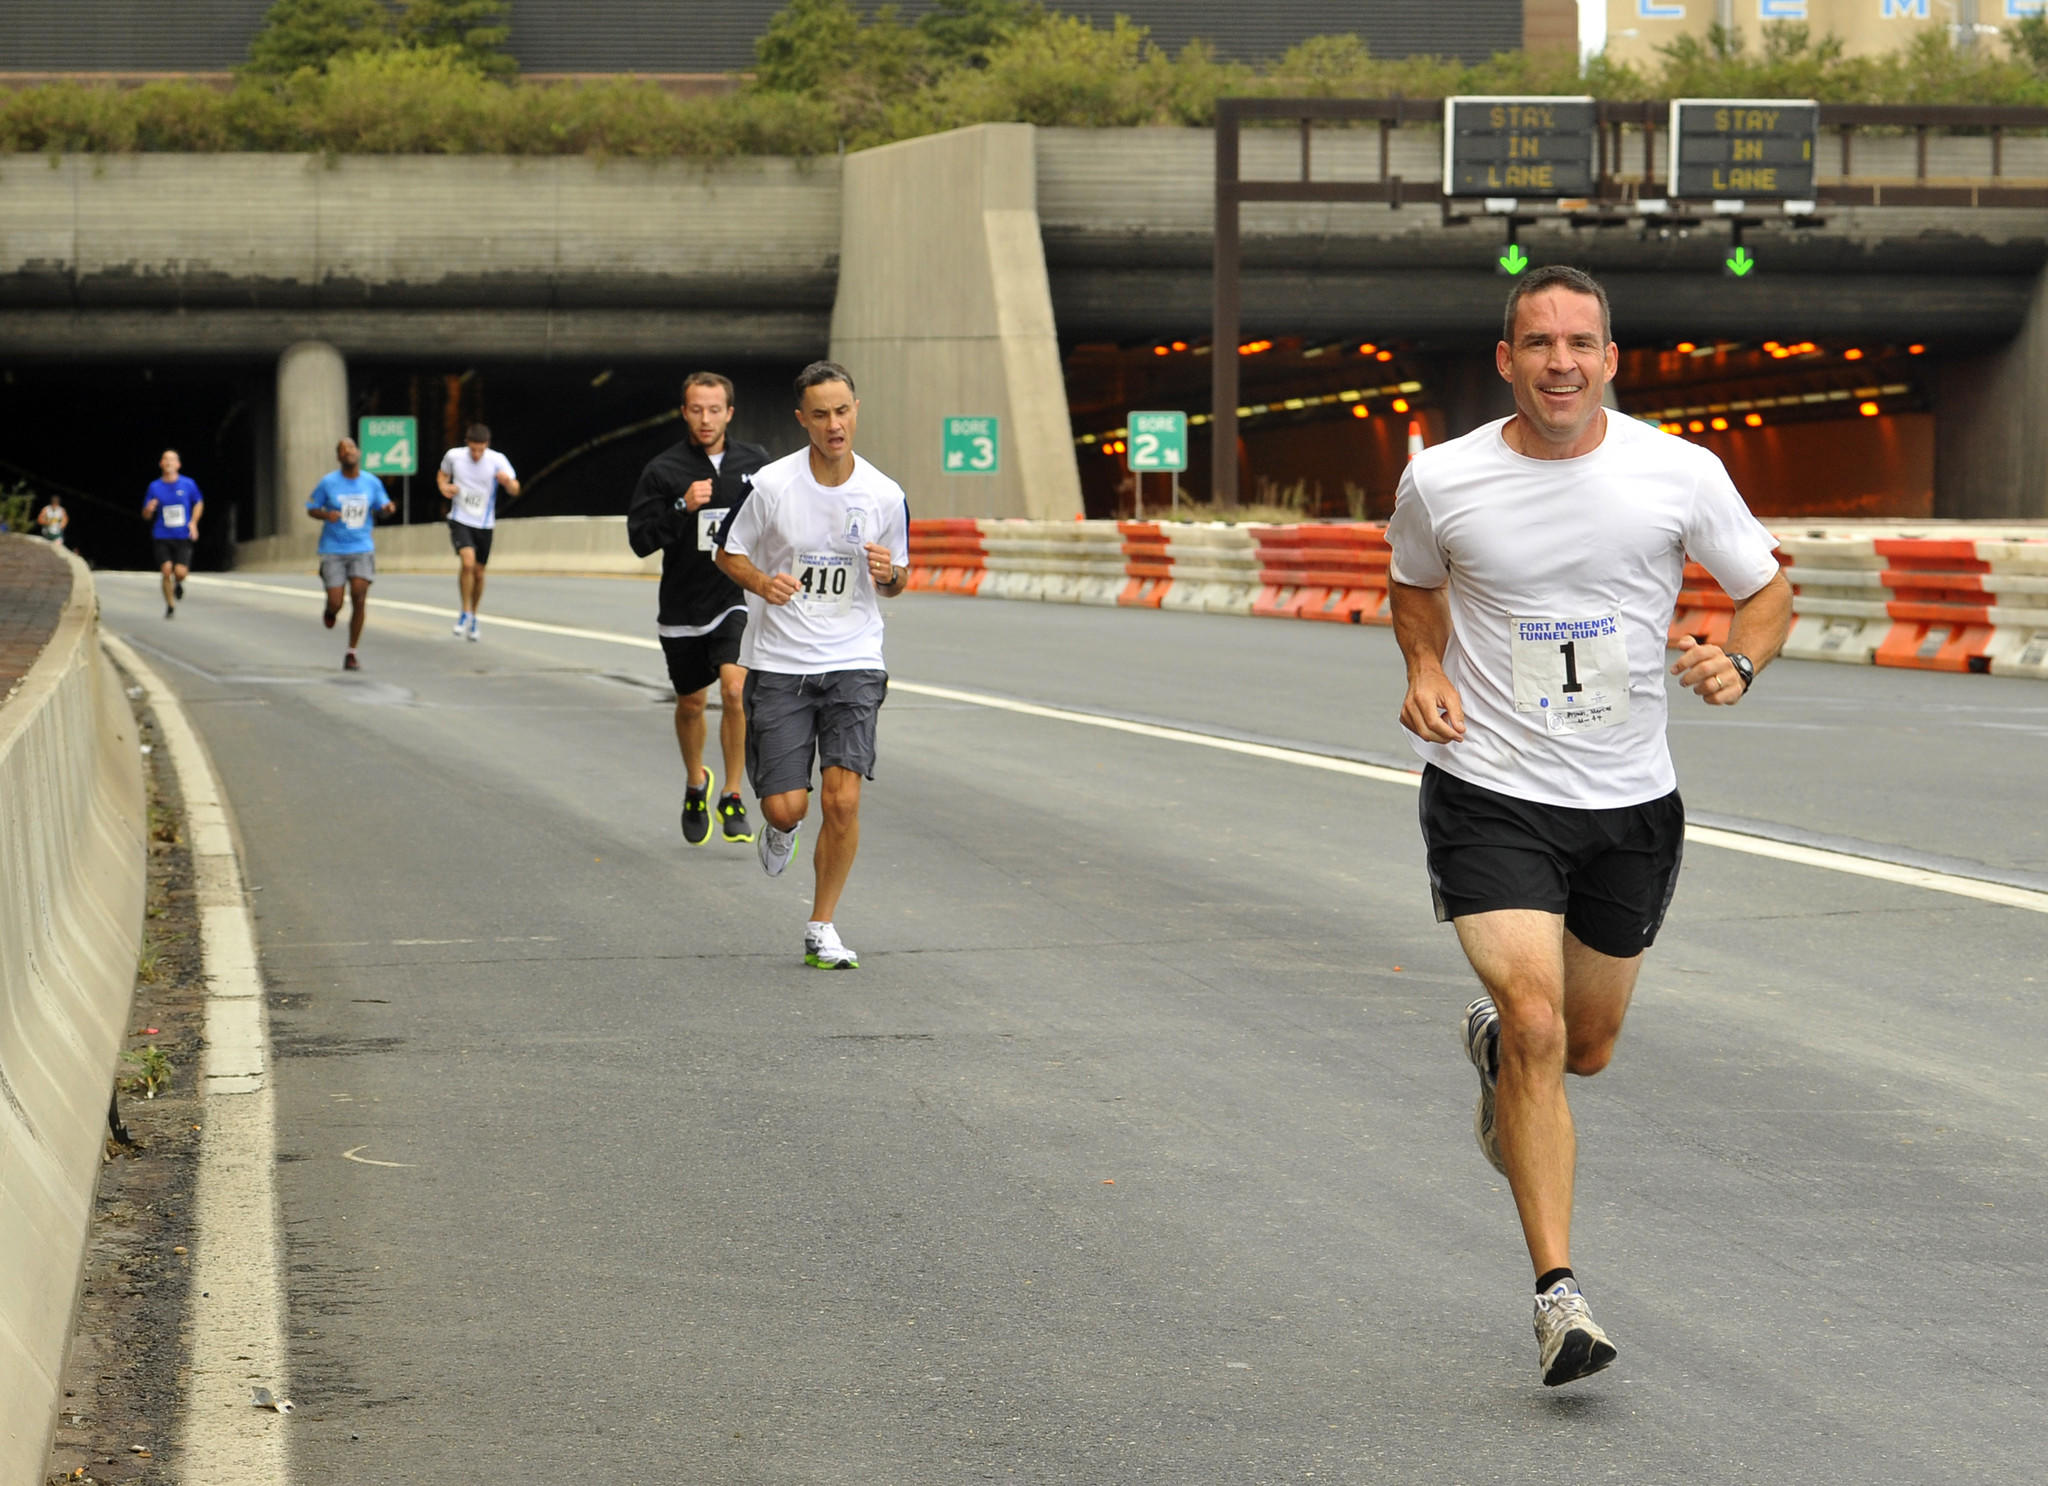 Marcus Brown, 47, Secretary of the Md. State Police, runs in the third annual Fort McHenry Tunnel 5K Run/Walk in 2011.